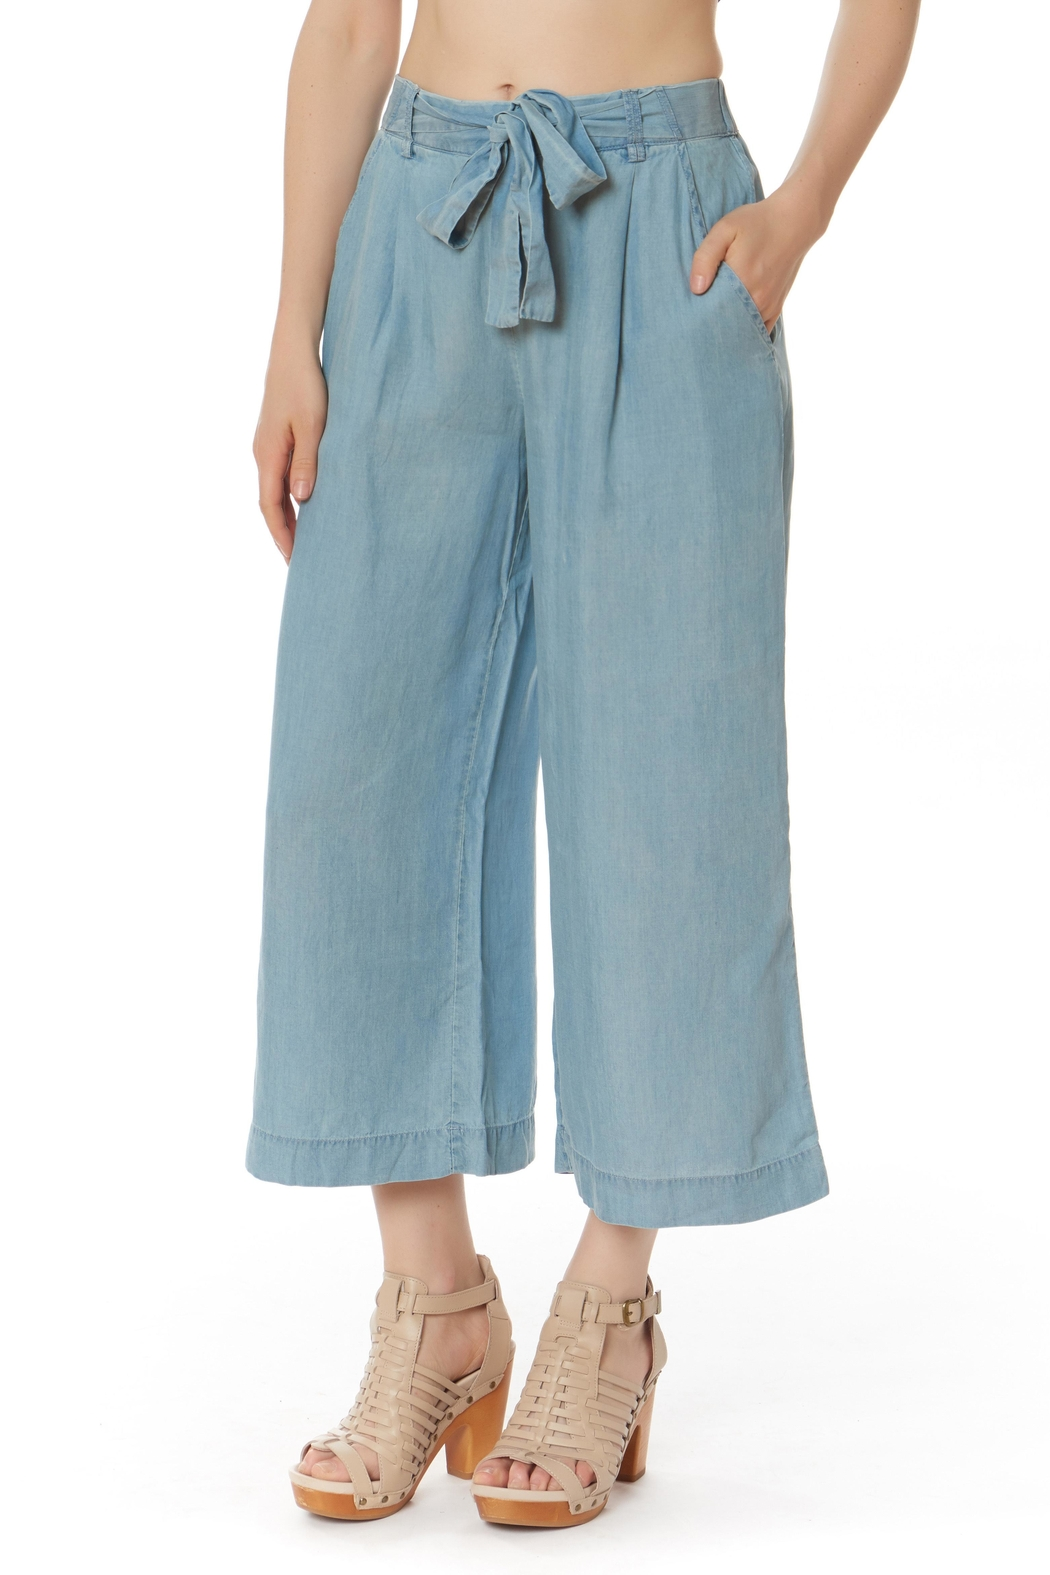 Do & Be Culotte Denim Pants - Front Cropped Image